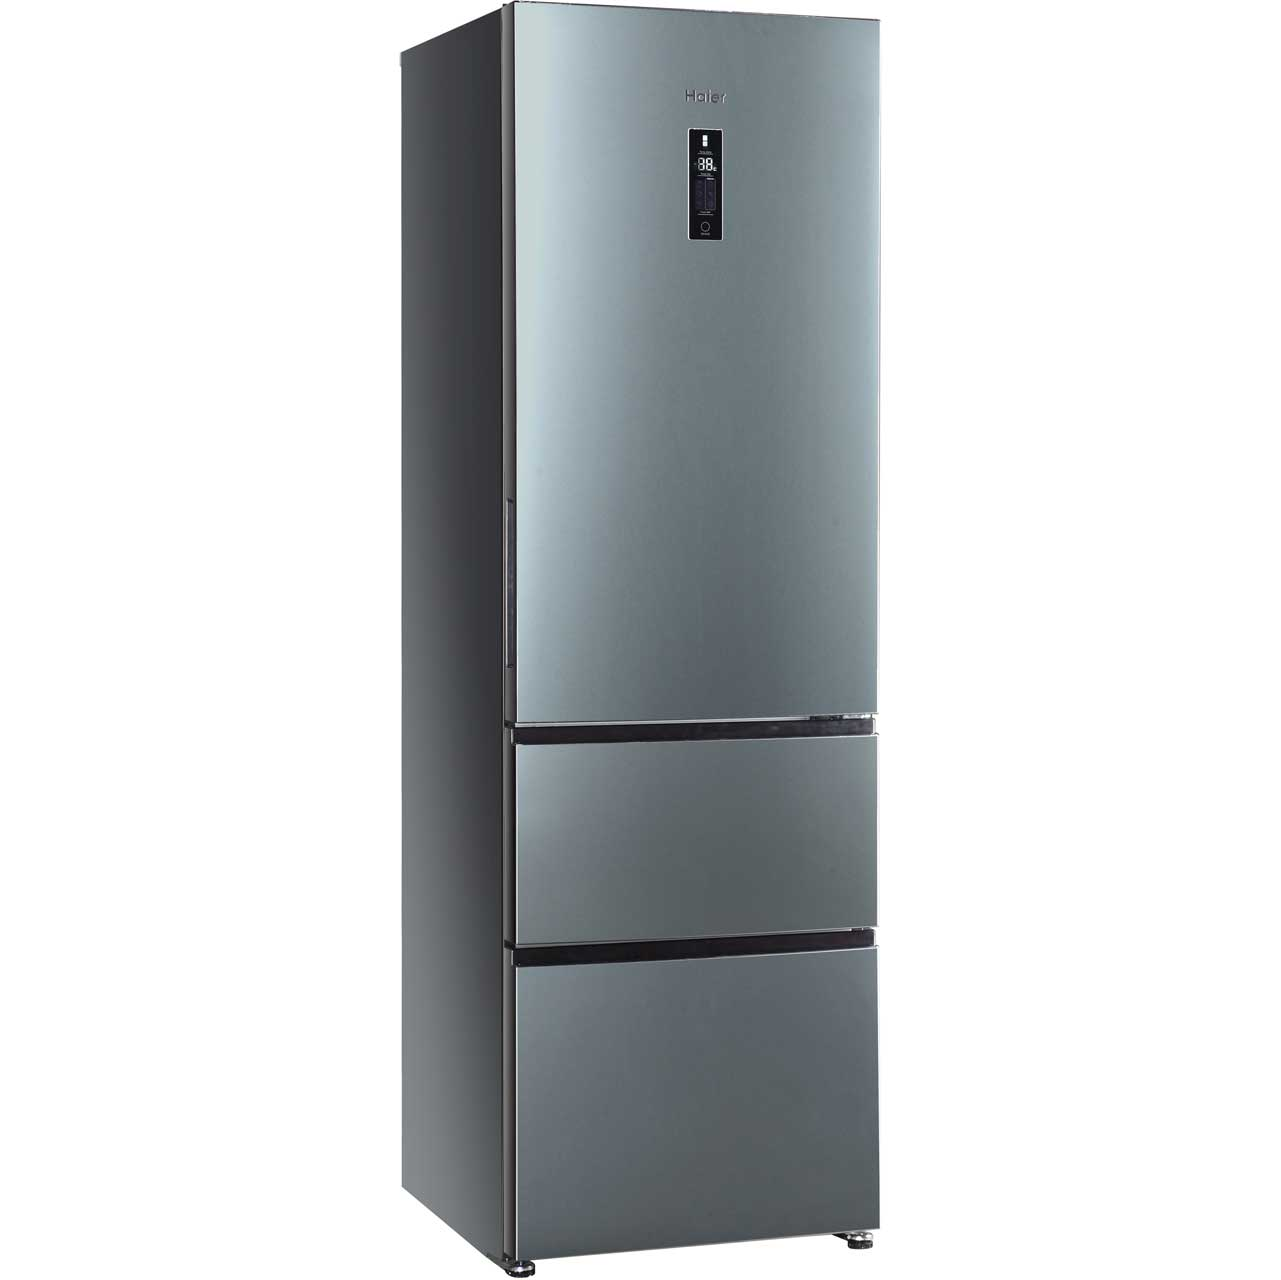 haier a2fe635cfj 60 40 frost free fridge freezer stainless steel. Black Bedroom Furniture Sets. Home Design Ideas